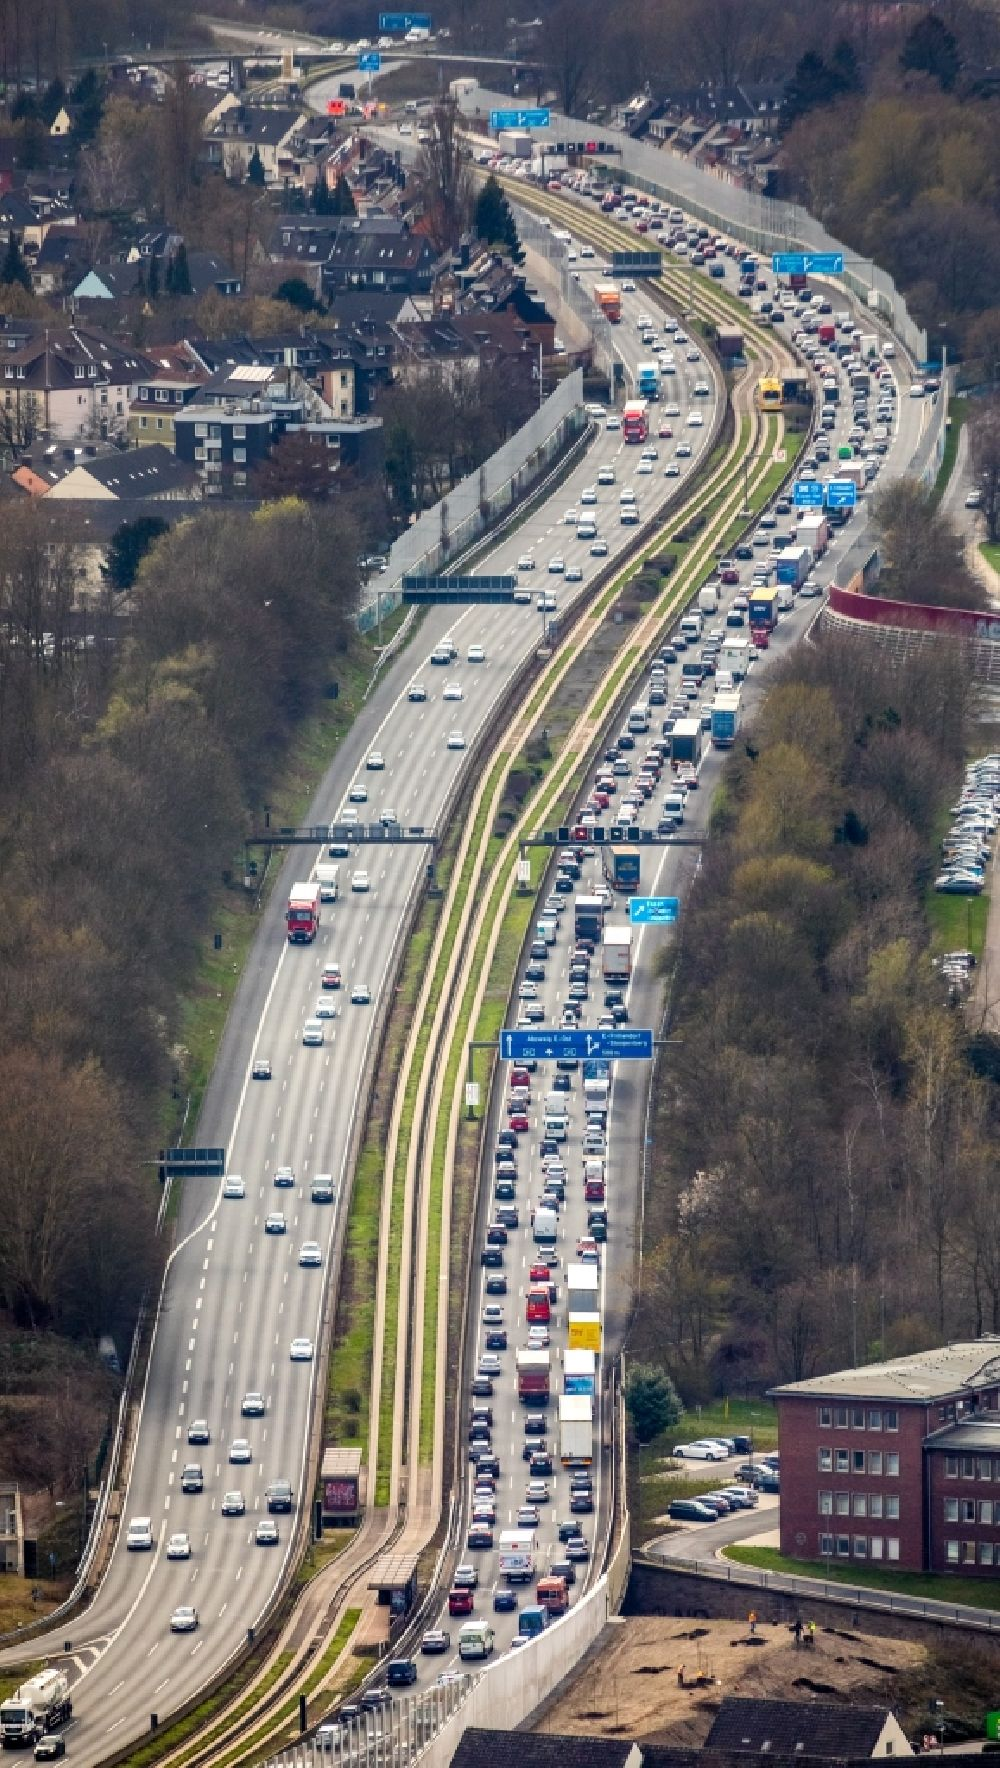 Aerial photograph Essen - Highway congestion along the route of the lanes BAB A40 - A52 in the district Frillendorf in Essen in the state North Rhine-Westphalia, Germany